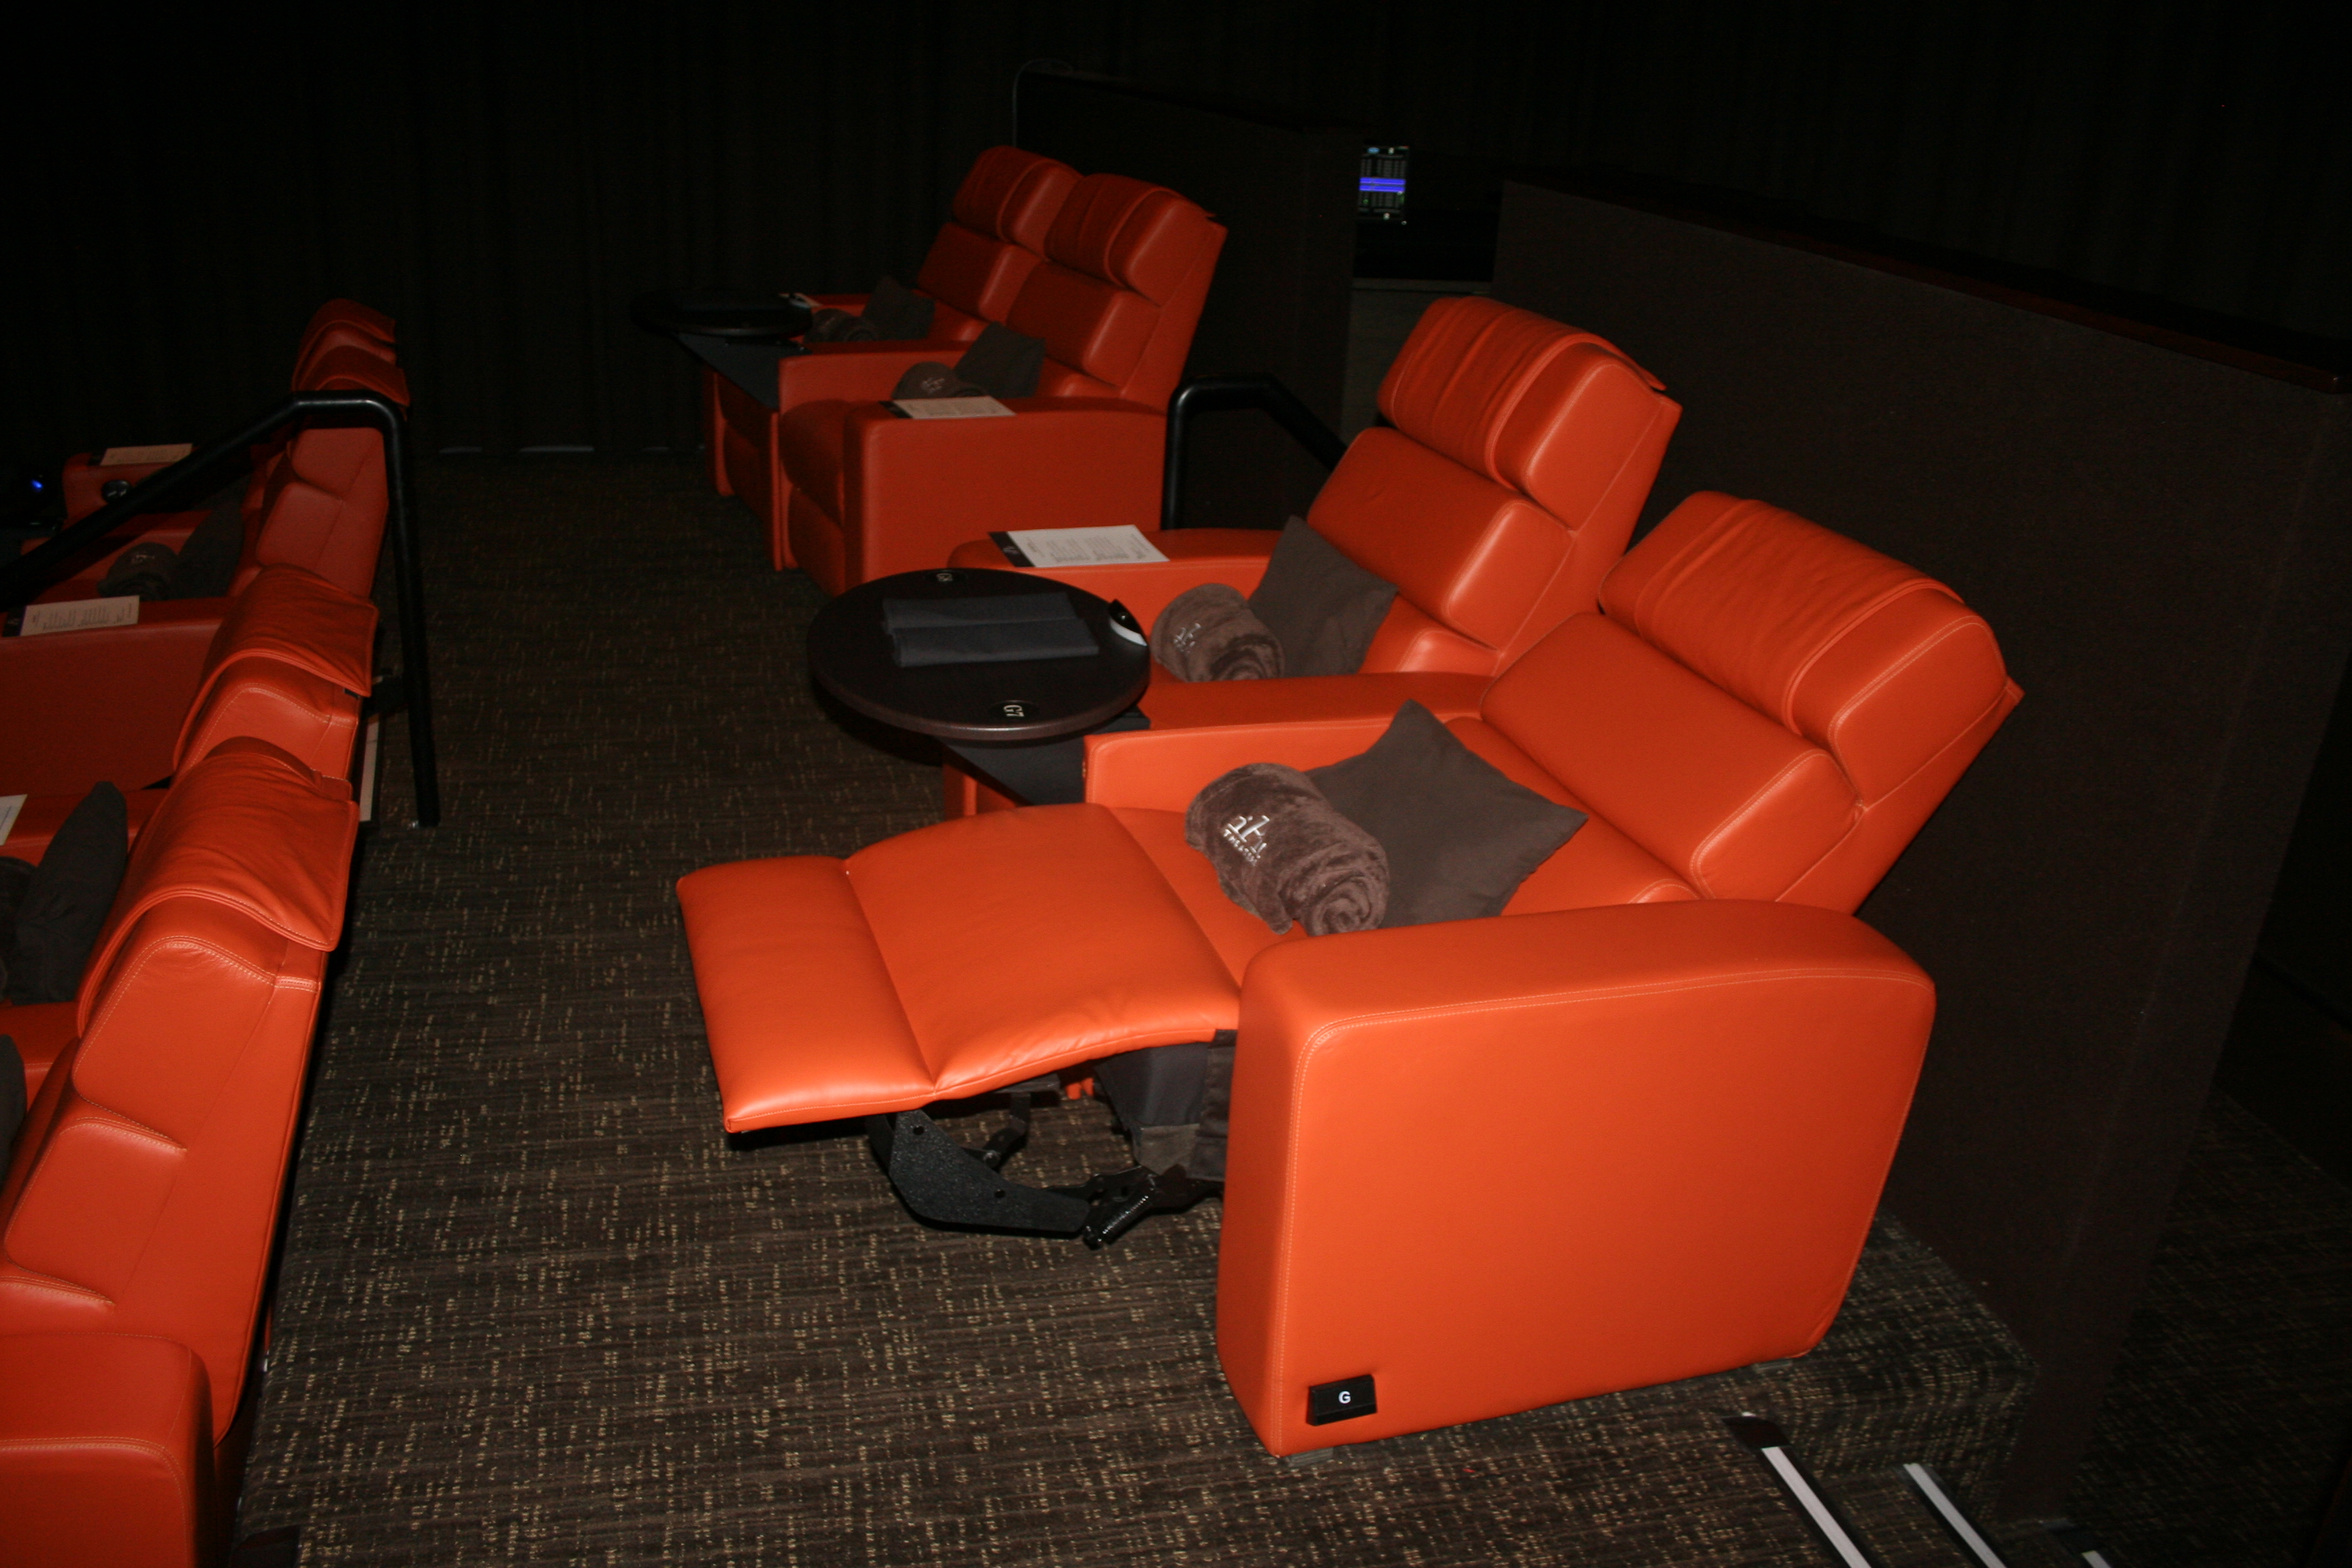 new ipic theater is pricy food is mediocre dc on heels